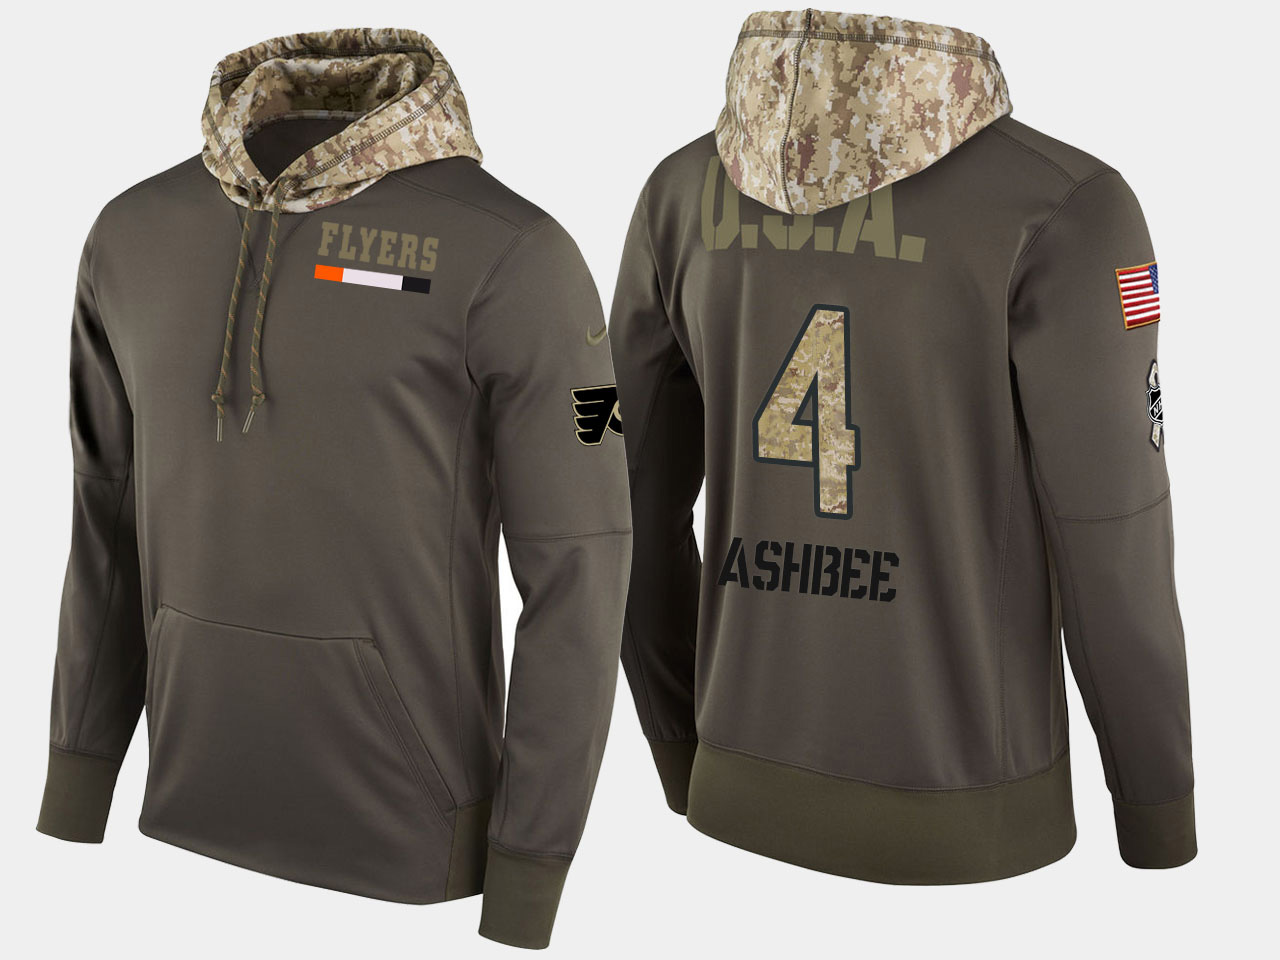 Nike Flyers 4 Barry Ashbee Retired Olive Salute To Service Pullover Hoodie